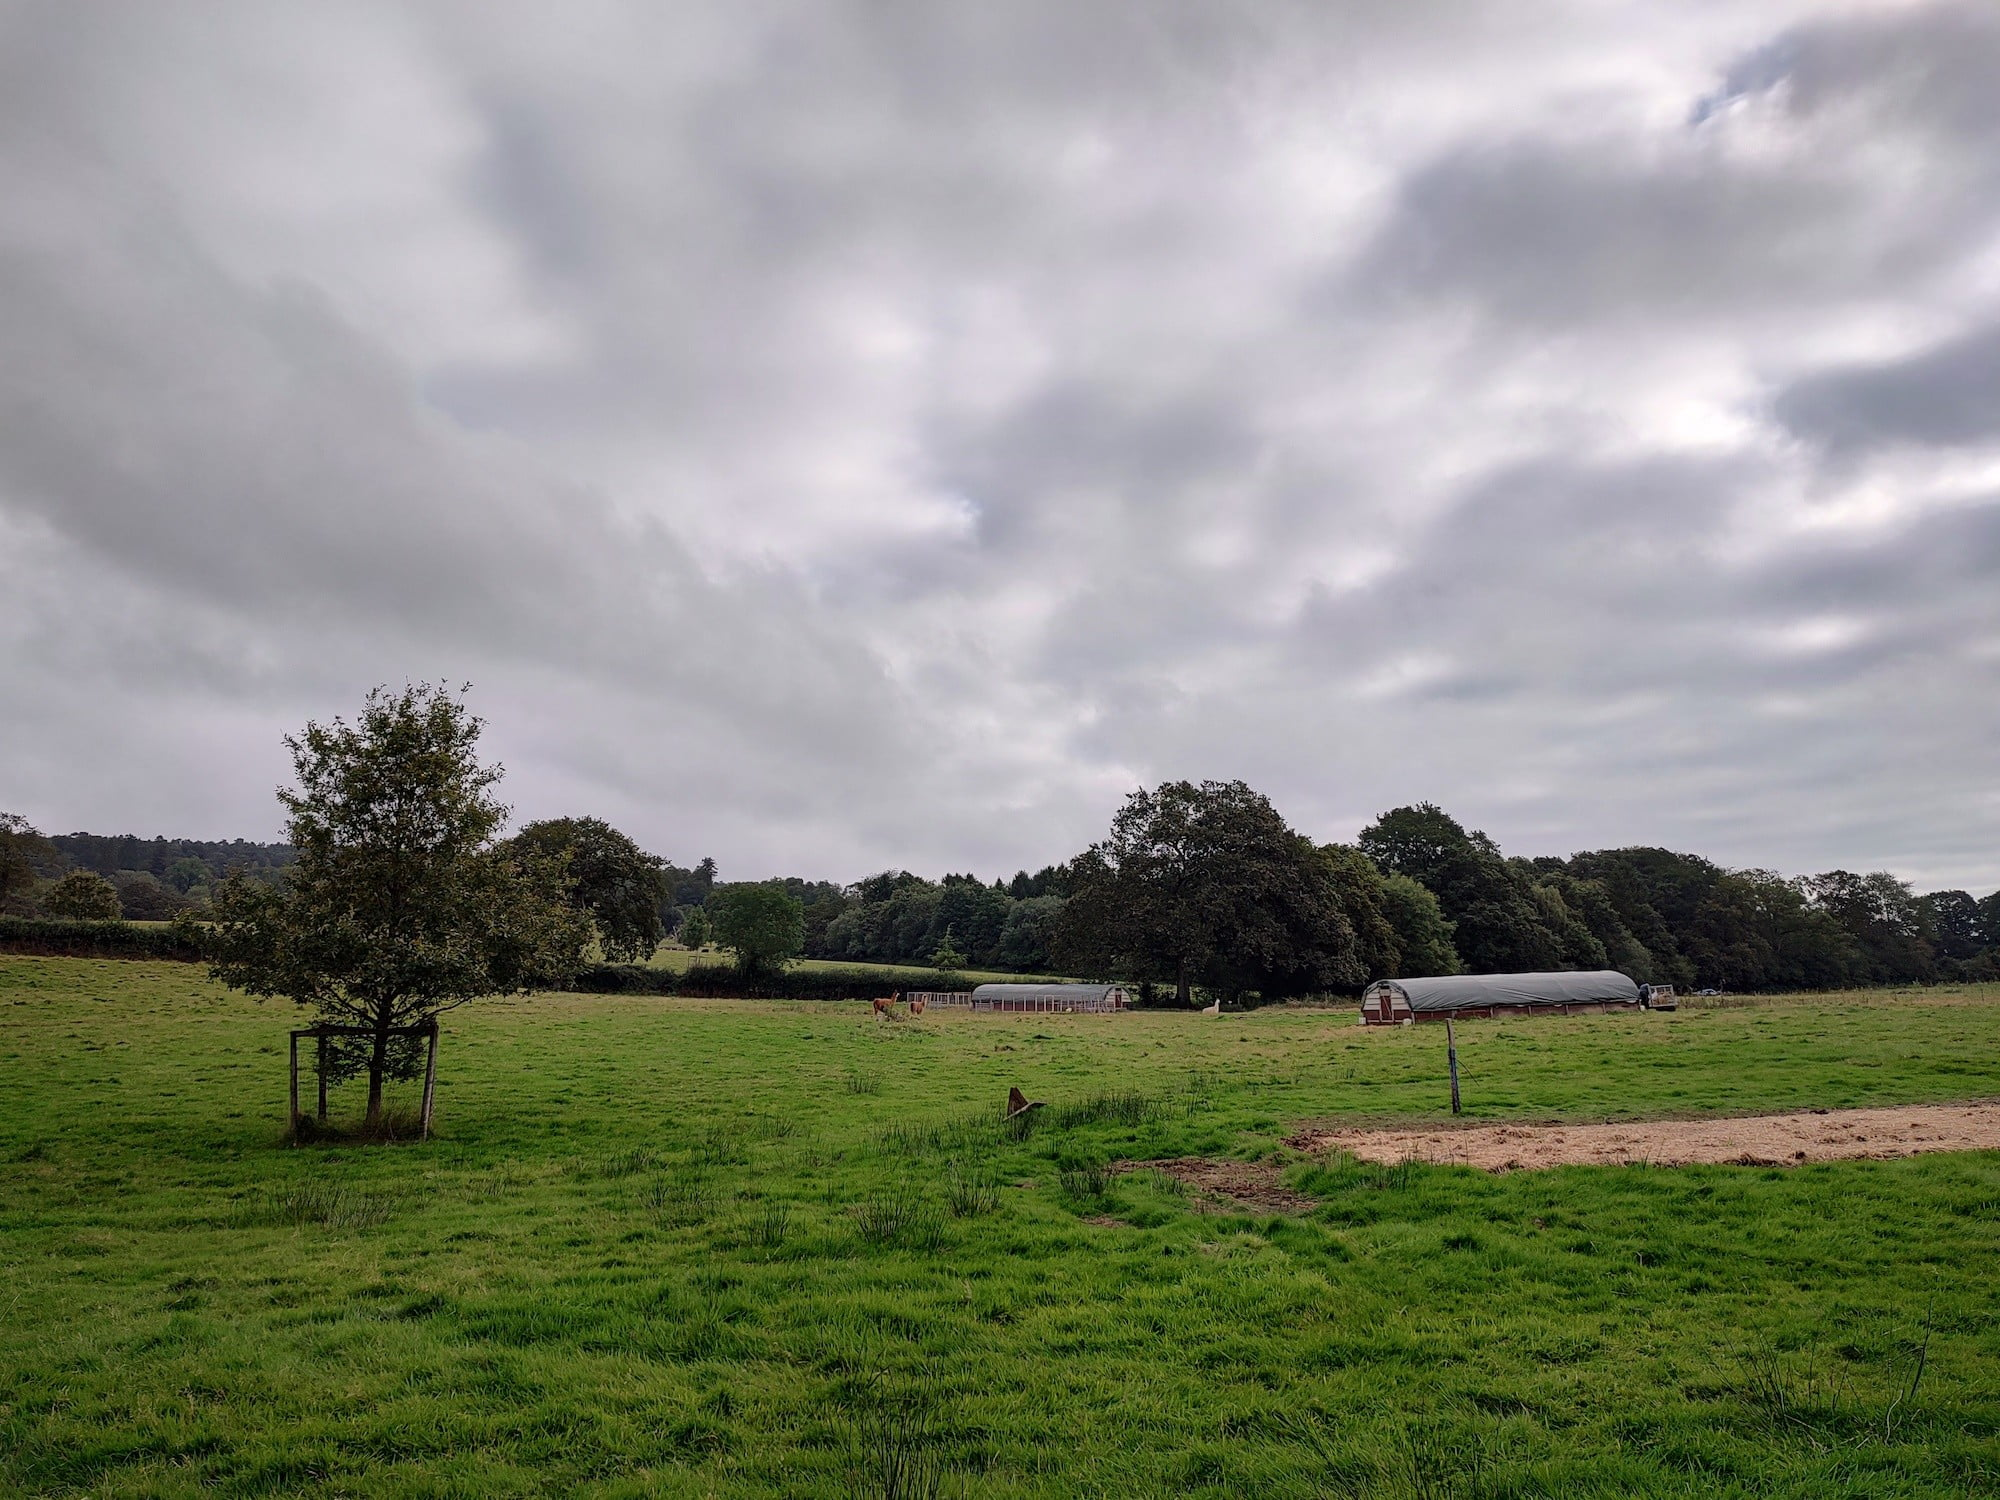 Photo of a farm taken with the main camera on the Moto Edge 20 Pro.